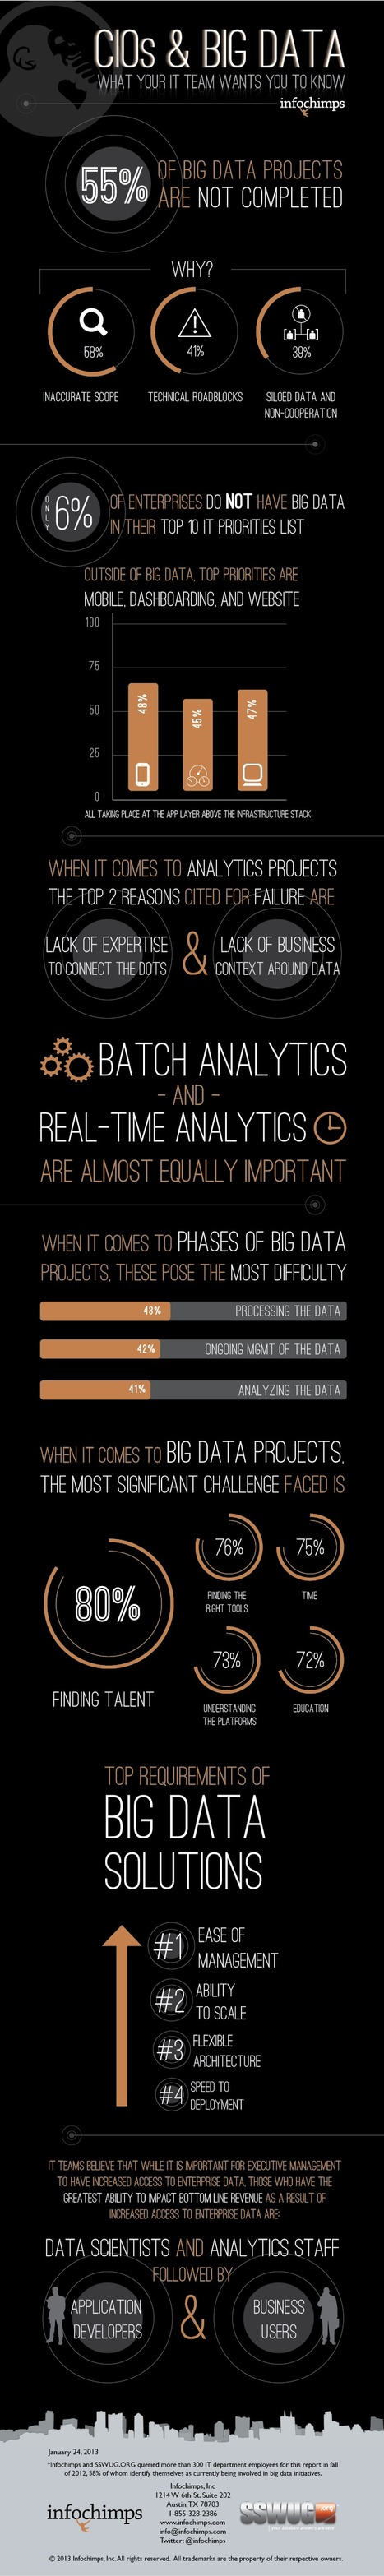 INFOGRAPHIC: CIOs & BIG DATA: What Your IT Team Wants You To Know | CloudTweaks | digitalassetman | Scoop.it